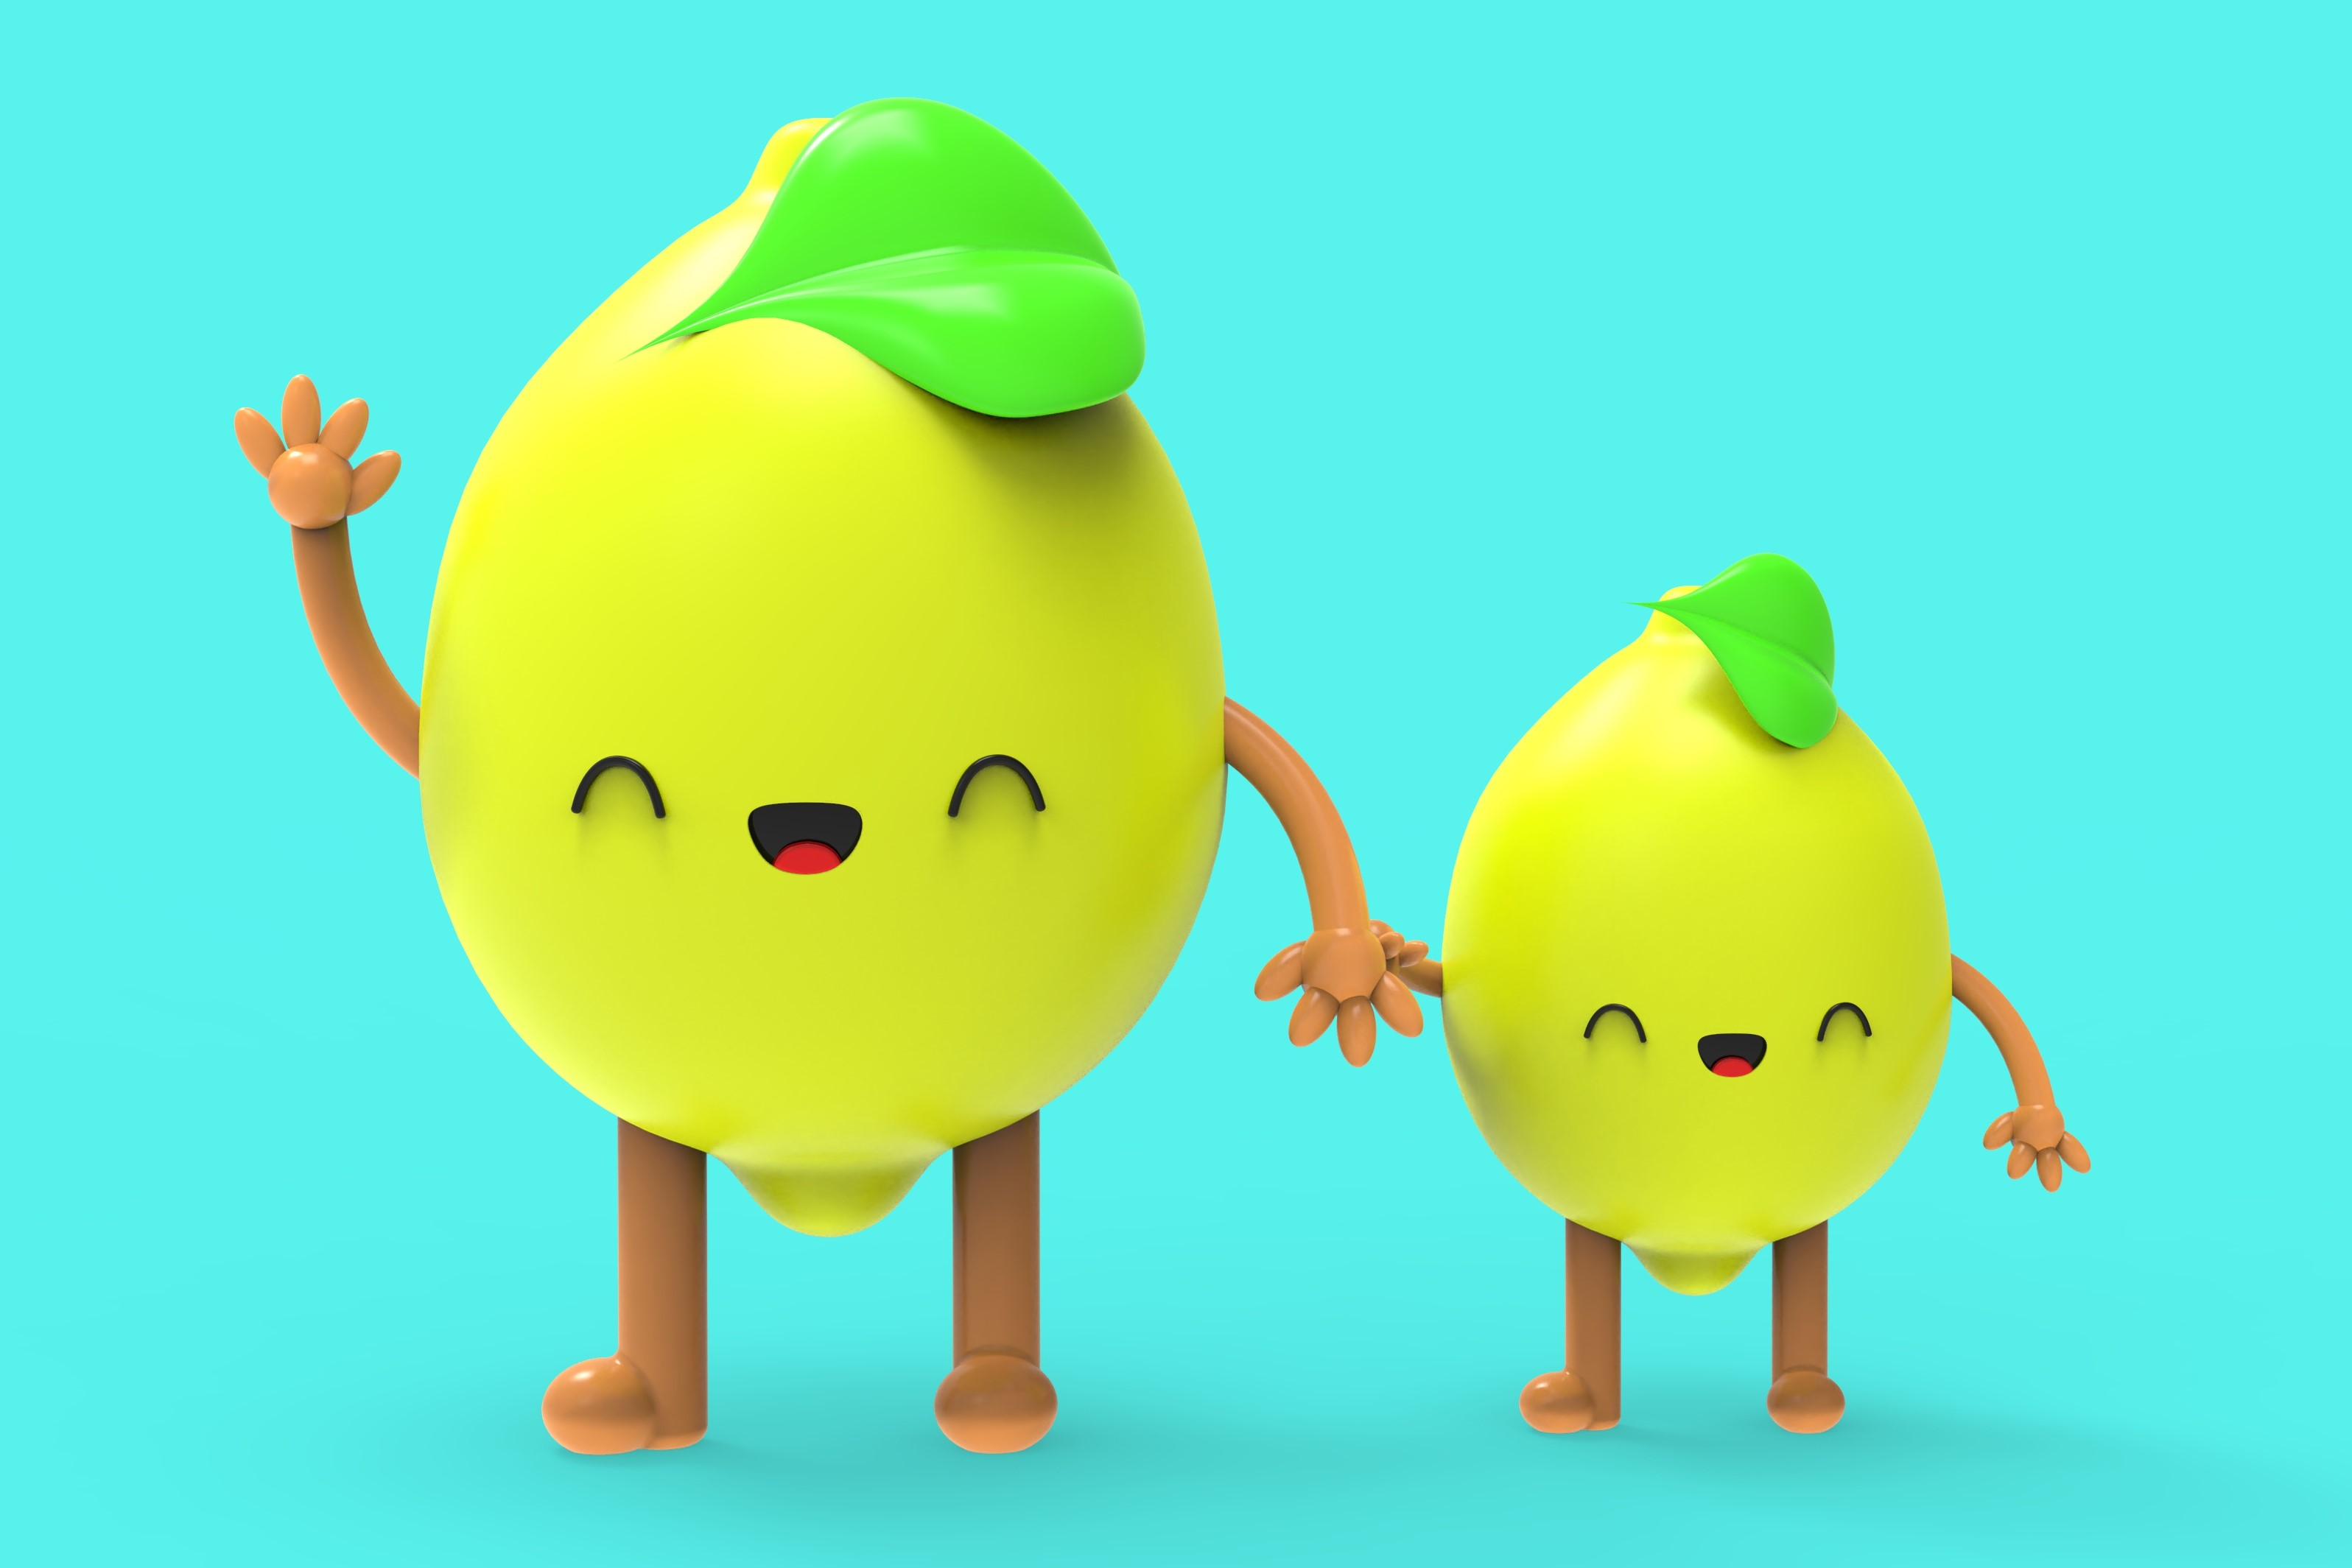 Download Free Cute Lemon Characters 3d Illustration Graphic By Olga for Cricut Explore, Silhouette and other cutting machines.